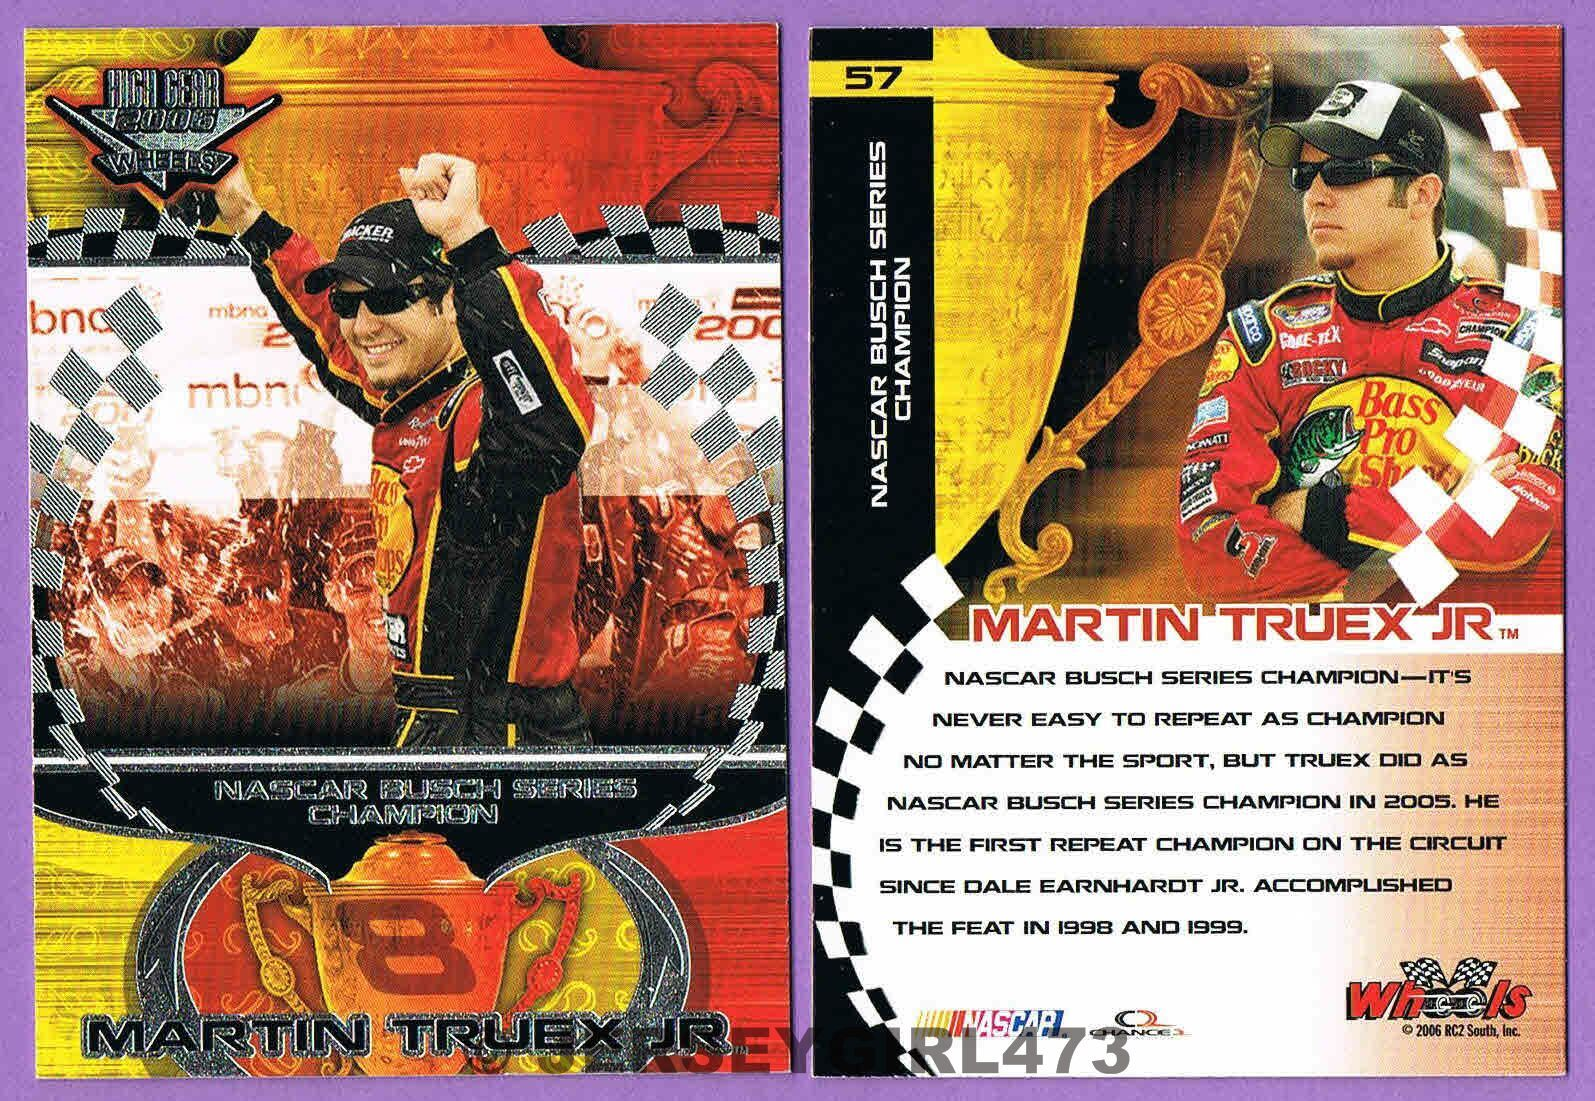 Martin Truex Jr. 2006 Wheels NBS Champion NASCAR Racing Card #57